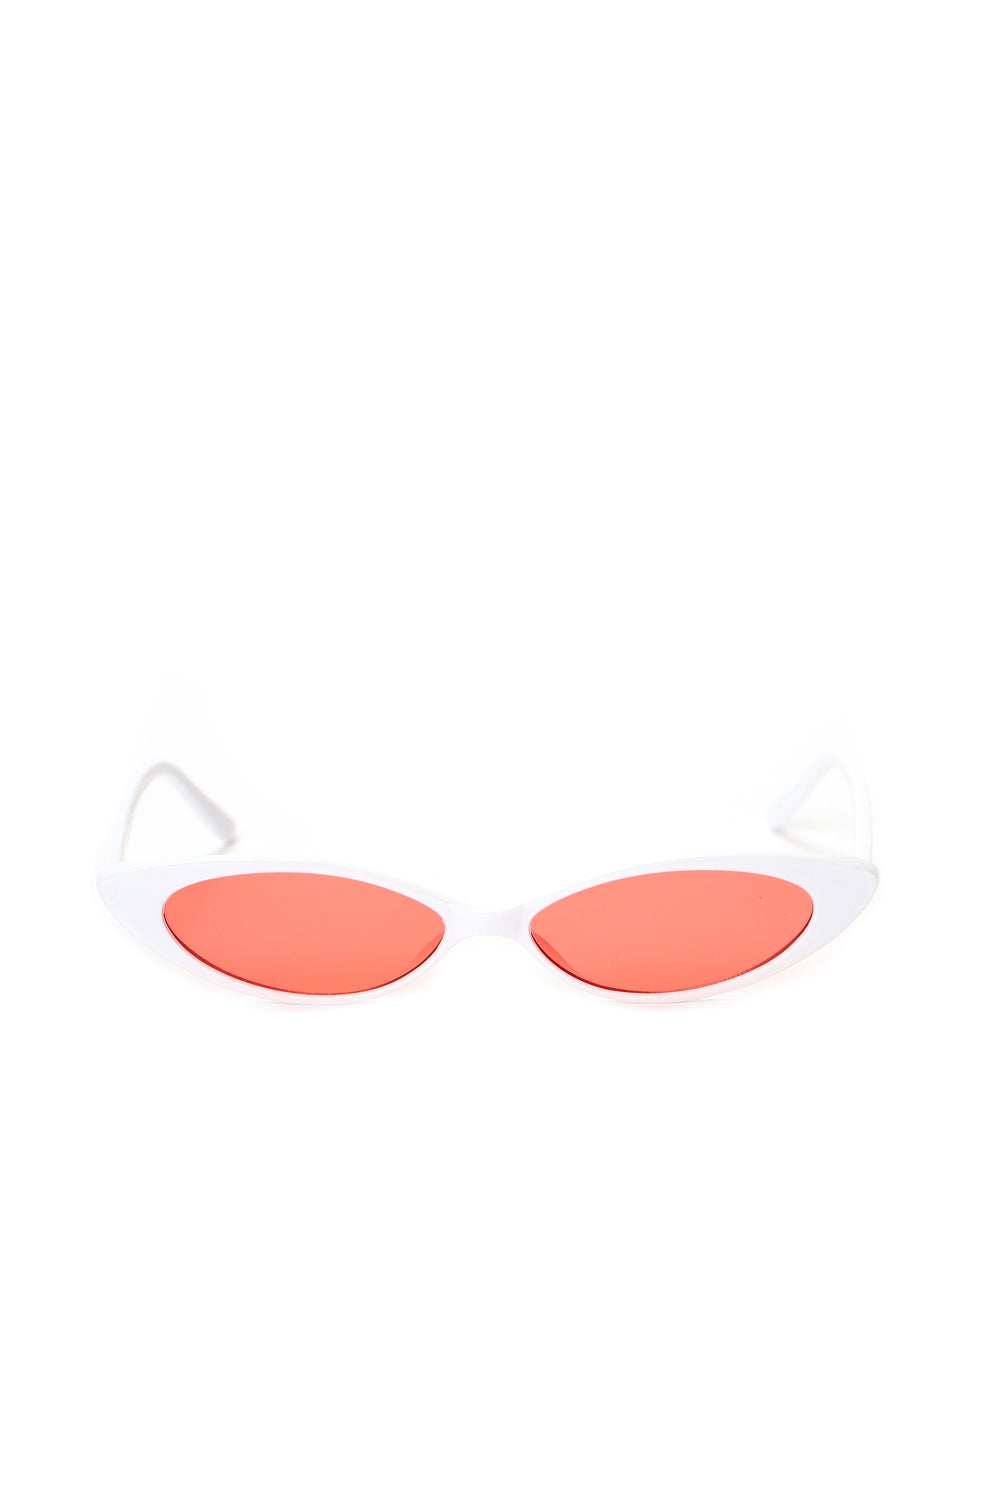 Growl Power Sunglasses - White